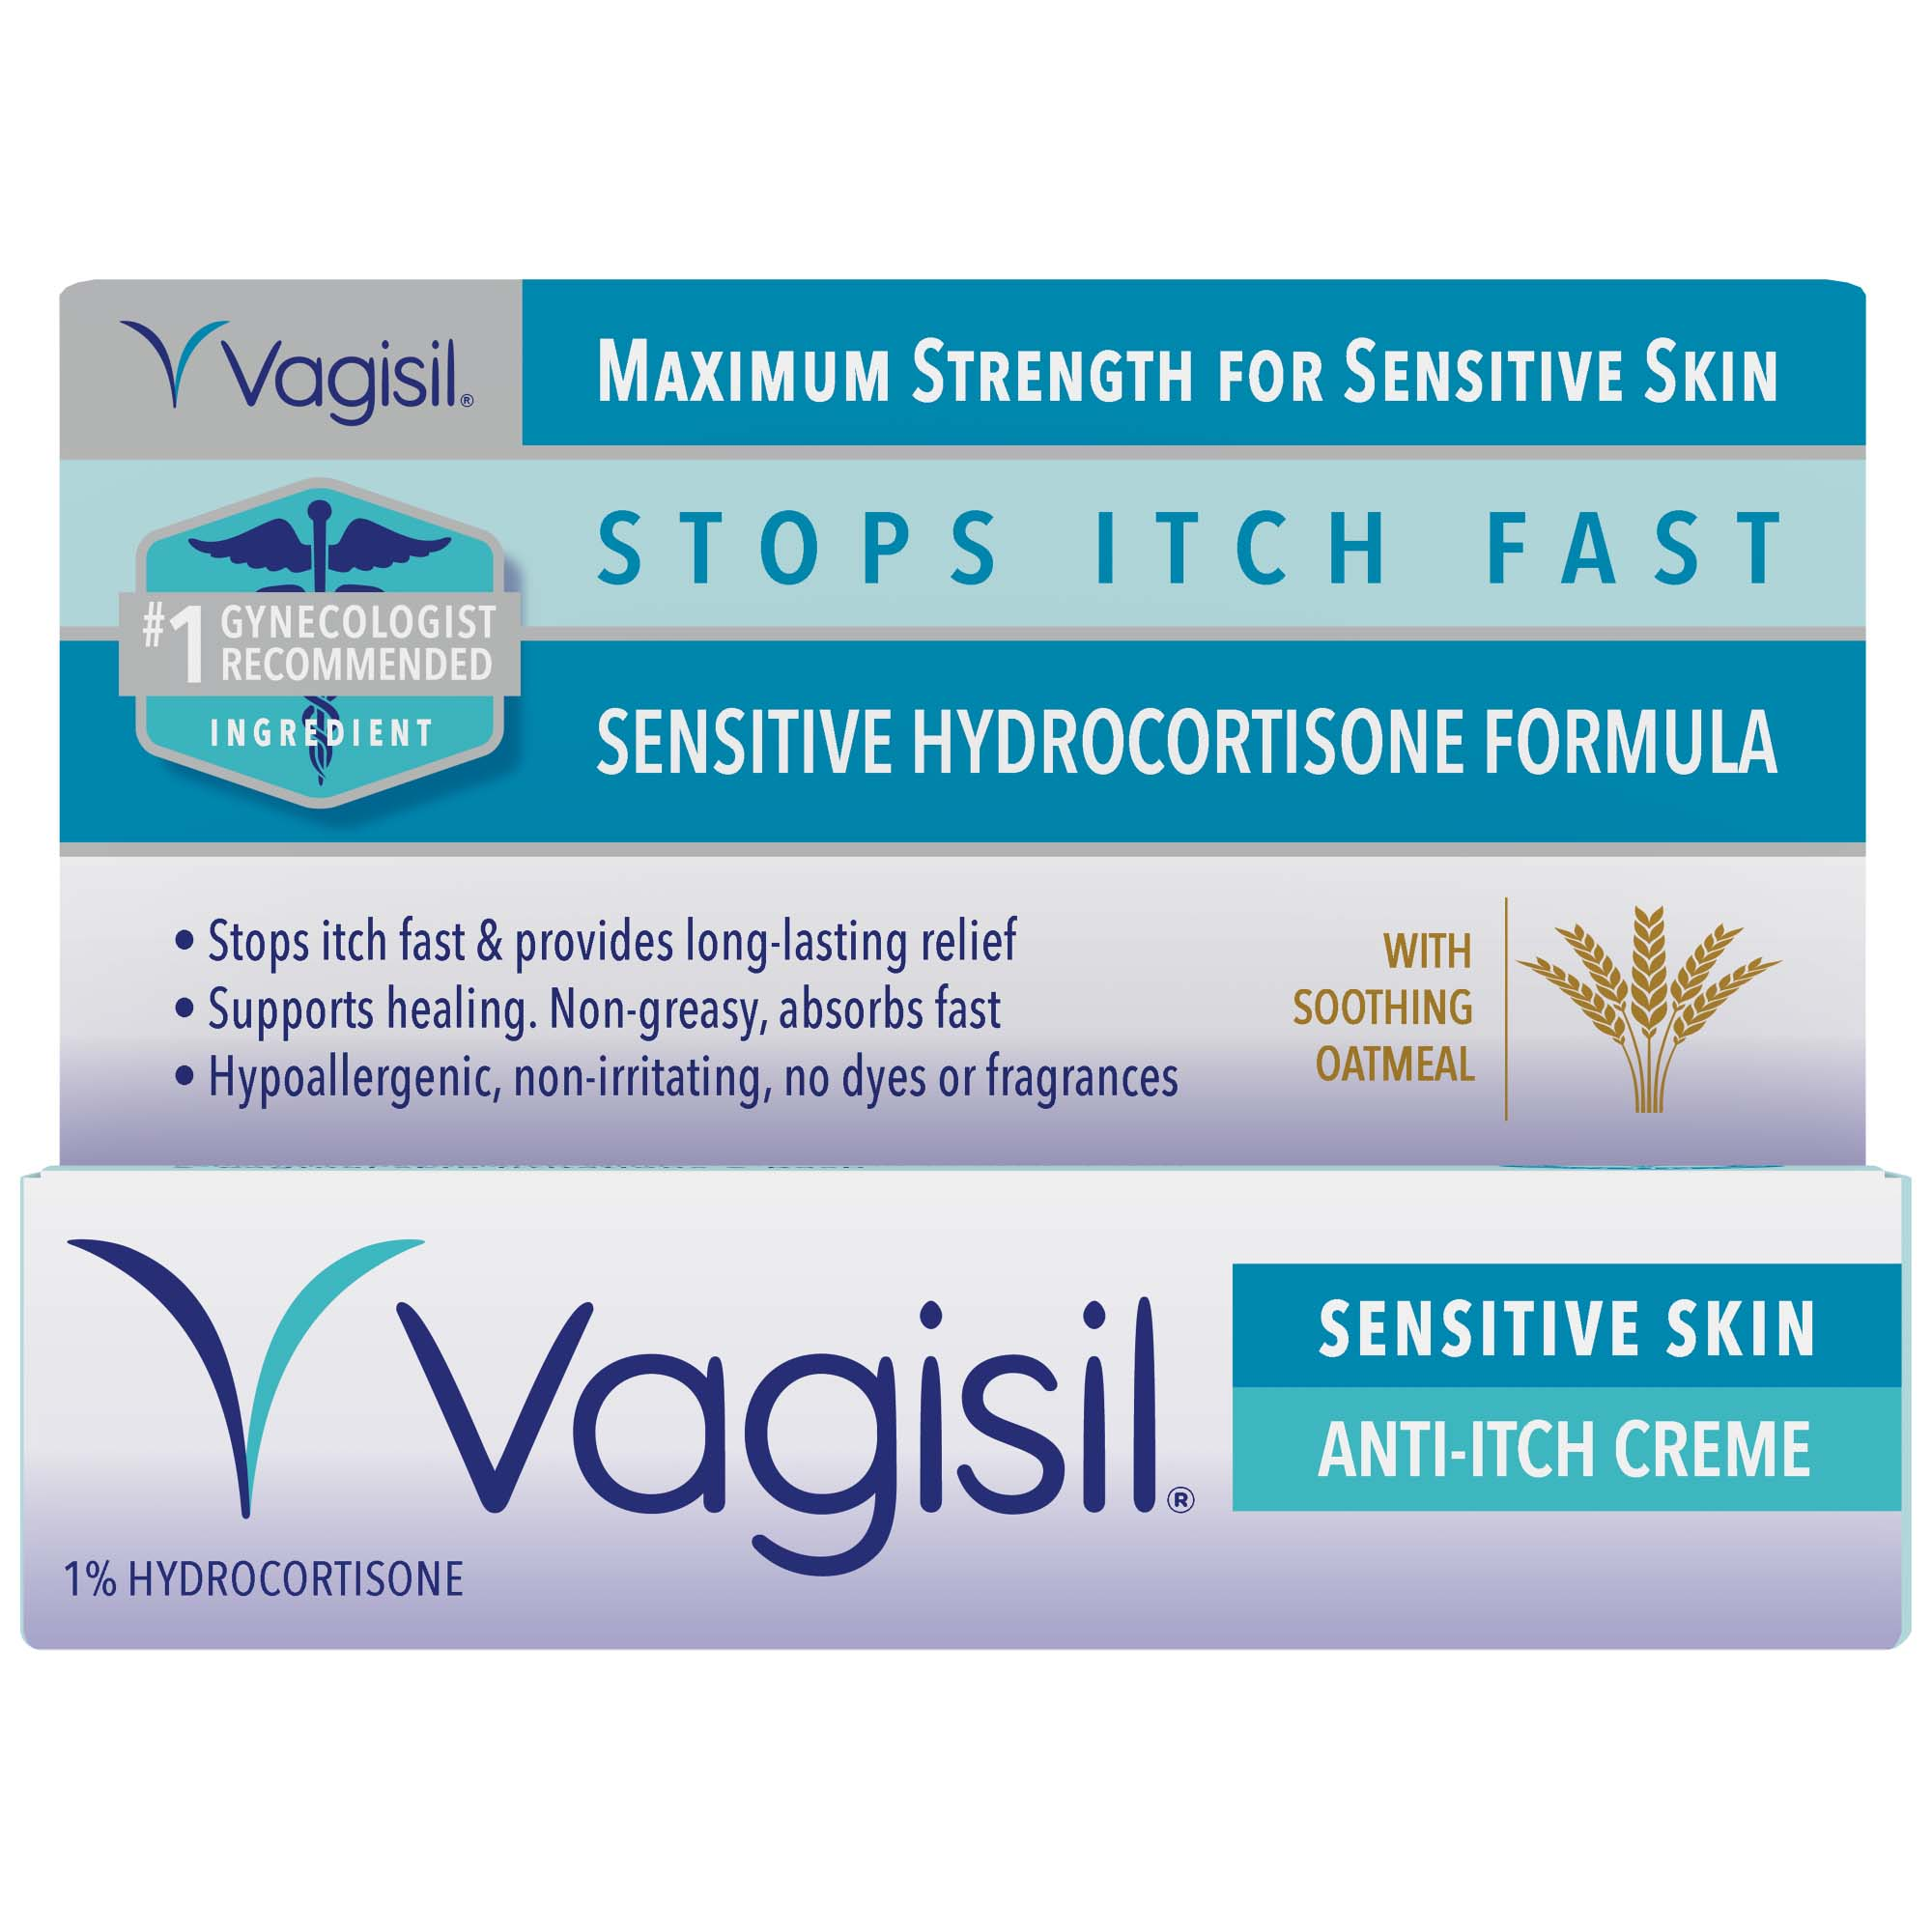 (2 pack) Vagisil Anti-Itch Vaginal Creme, Maximum Strength, Sensitive Skin Formula with Hydrocortisone and Soothing Oatmeal, 1 Ounce